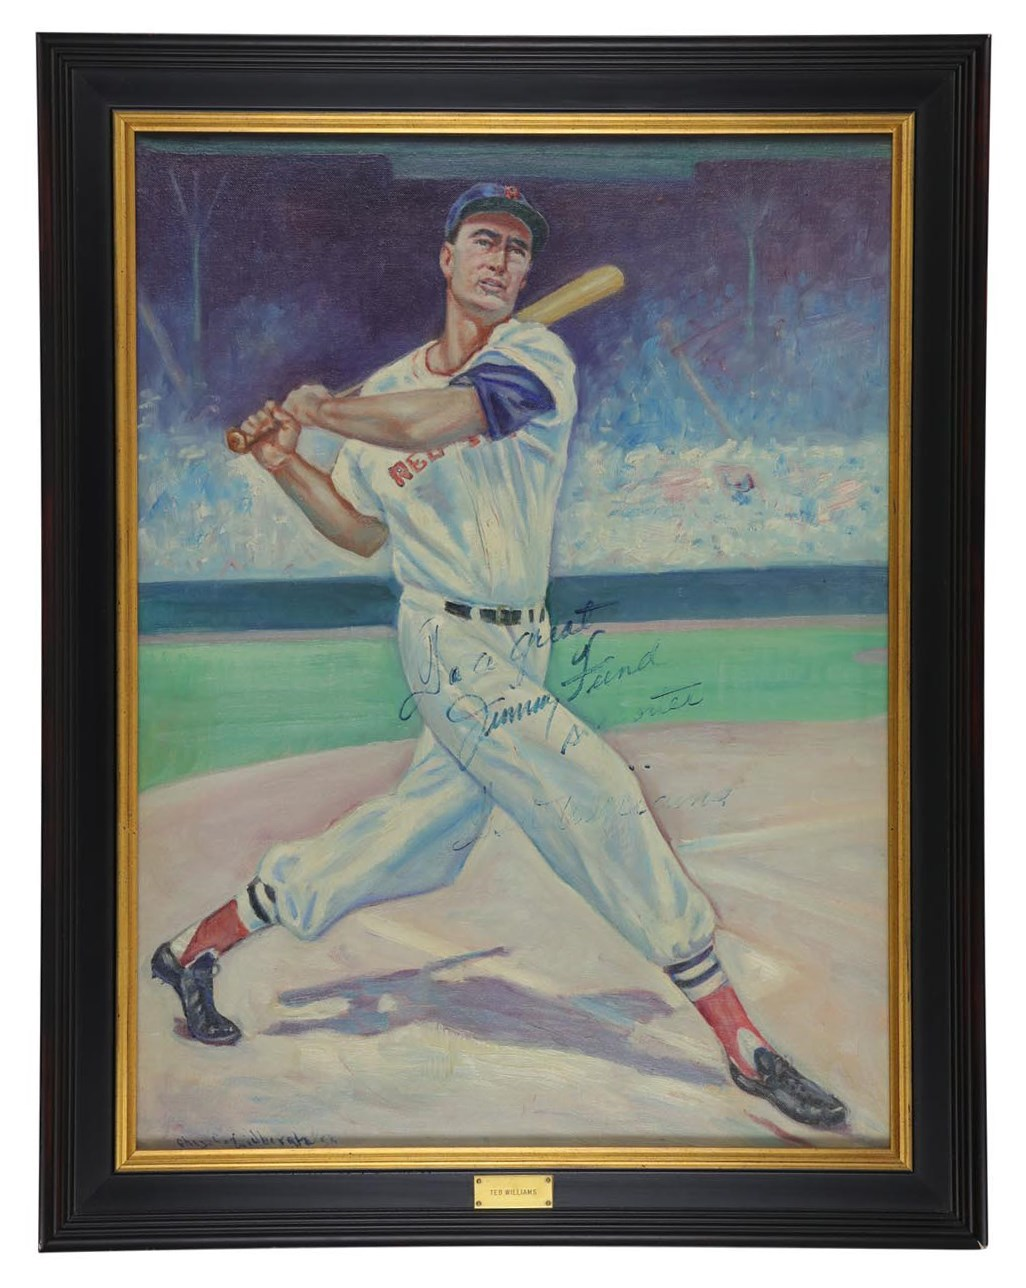 1958 Ted Williams Signed Jimmy Fund Presentation Painting (PSA)